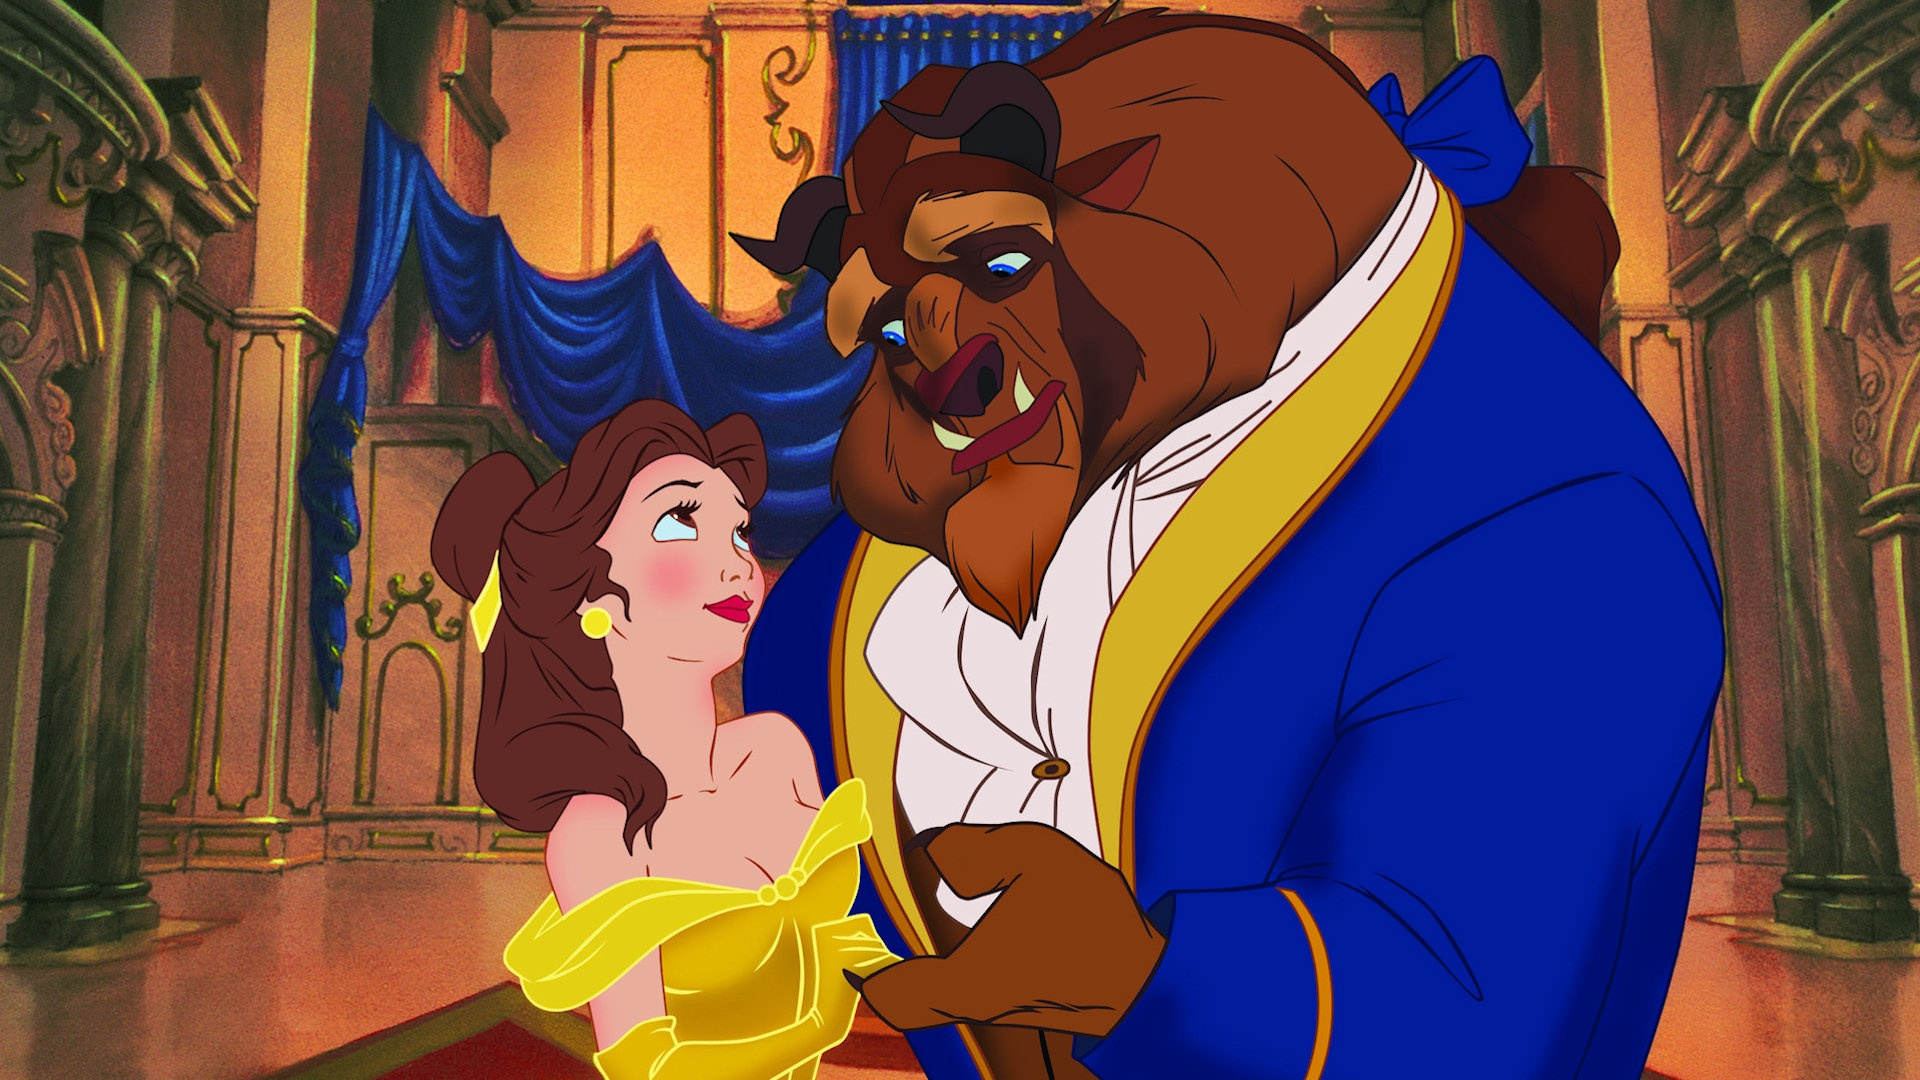 the beauty behind the beast humanizing